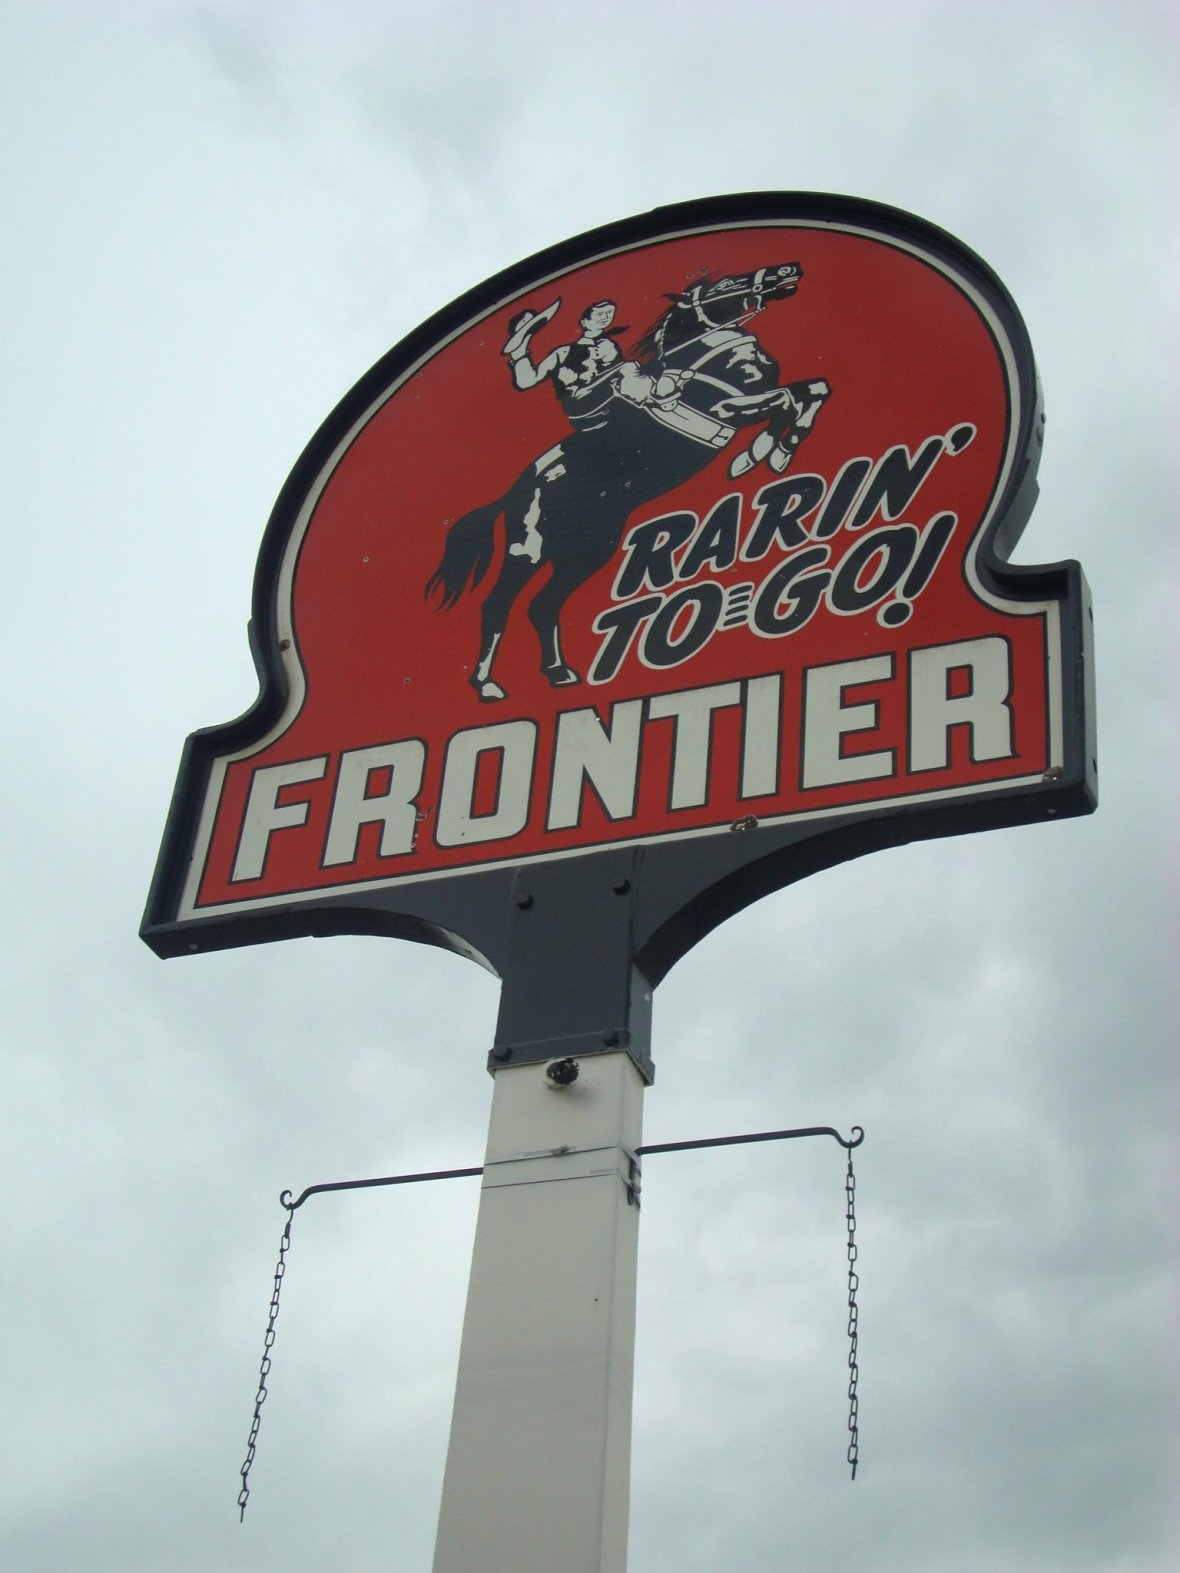 Frontier Gas sign - Craig, Colorado U.S.A. - May 21, 2009